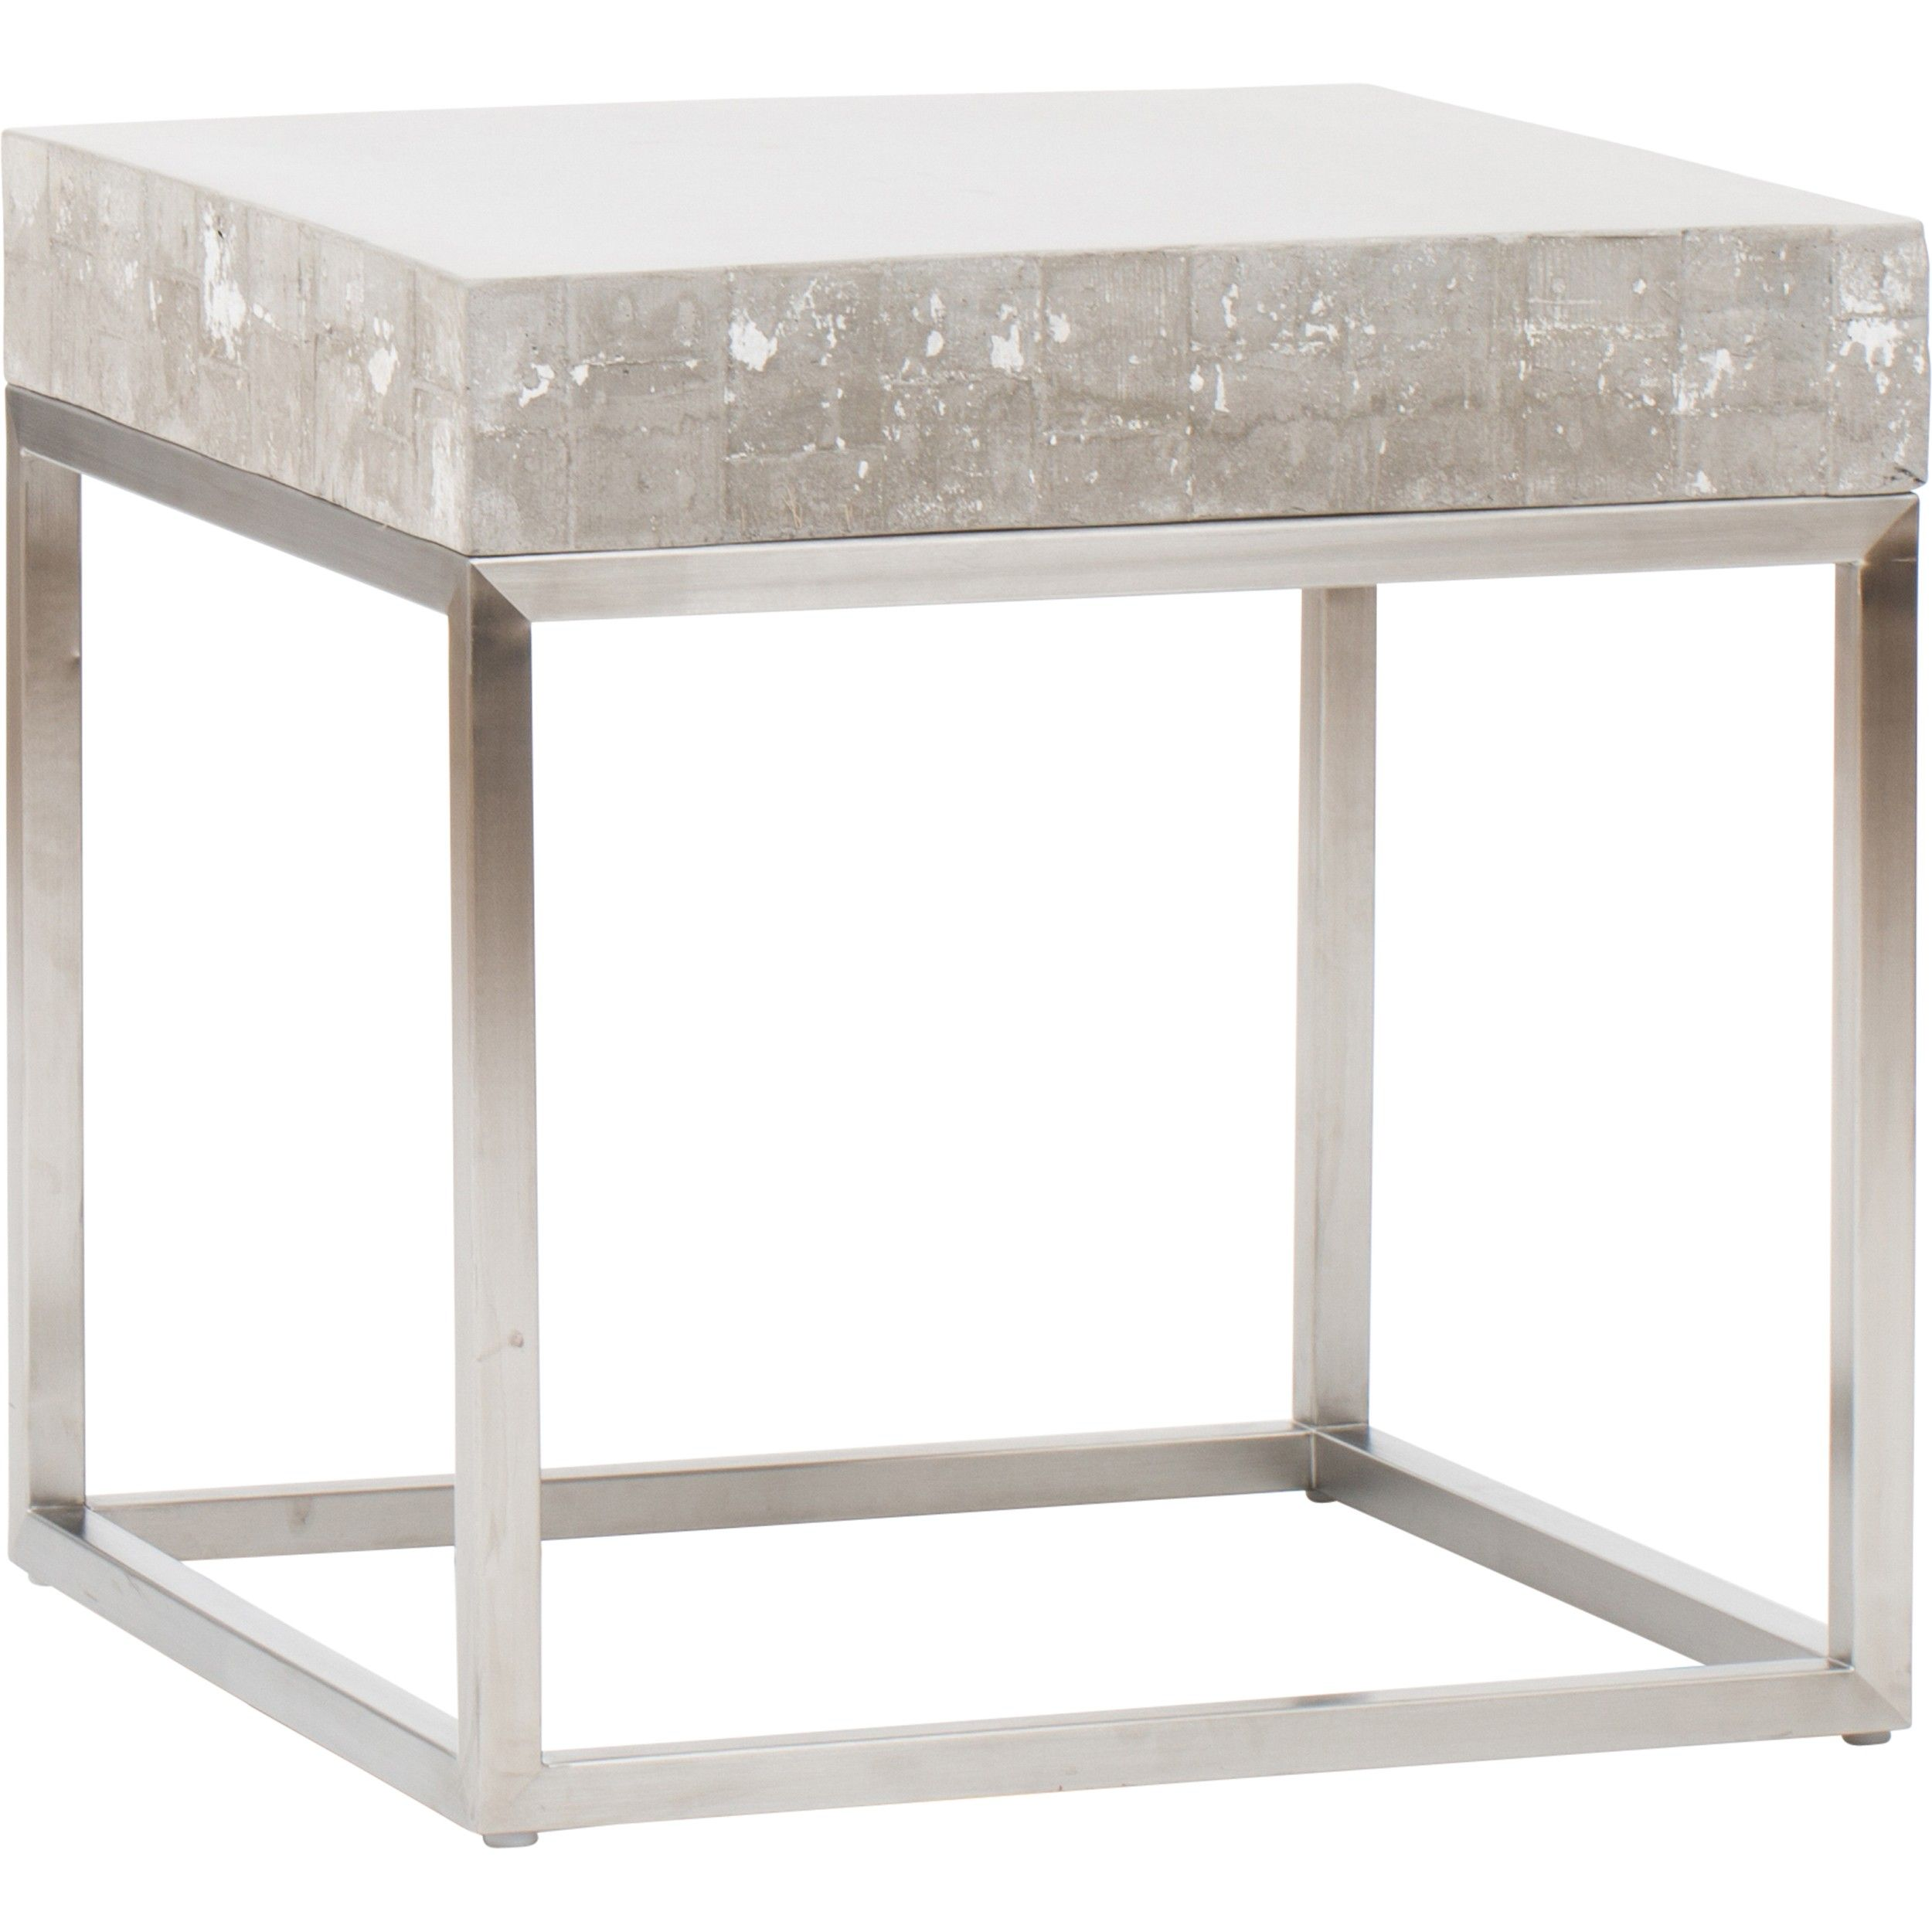 23+ White concrete top coffee table inspirations